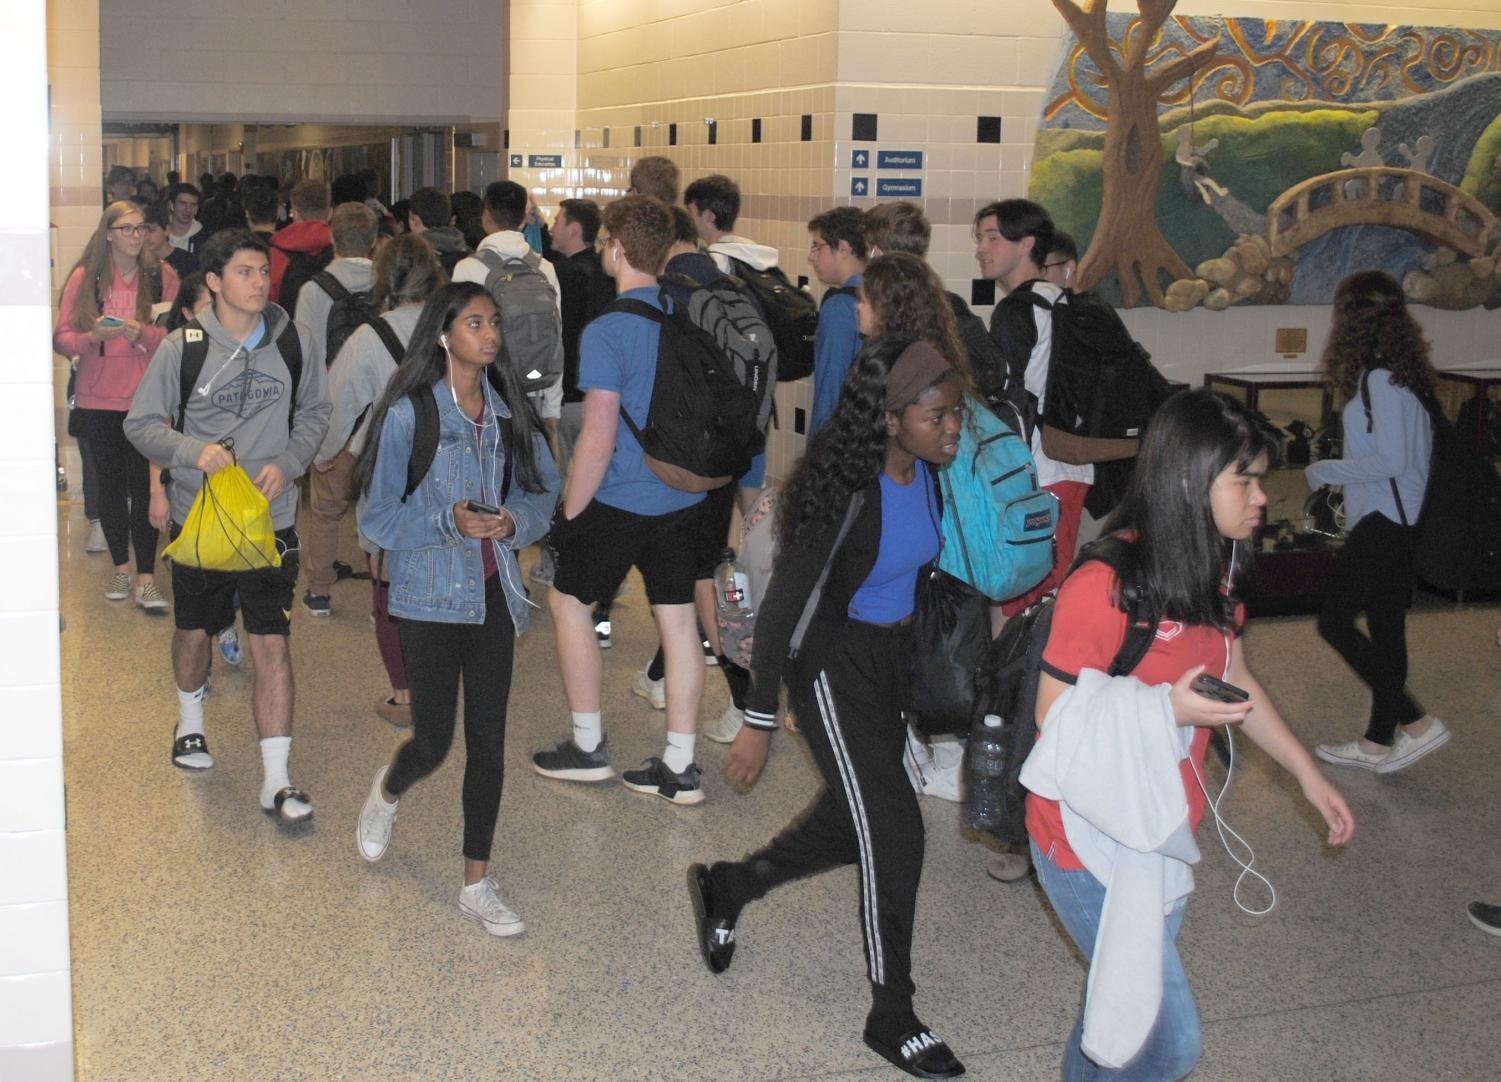 Students try to avoid traffic in between periods in the hallway.